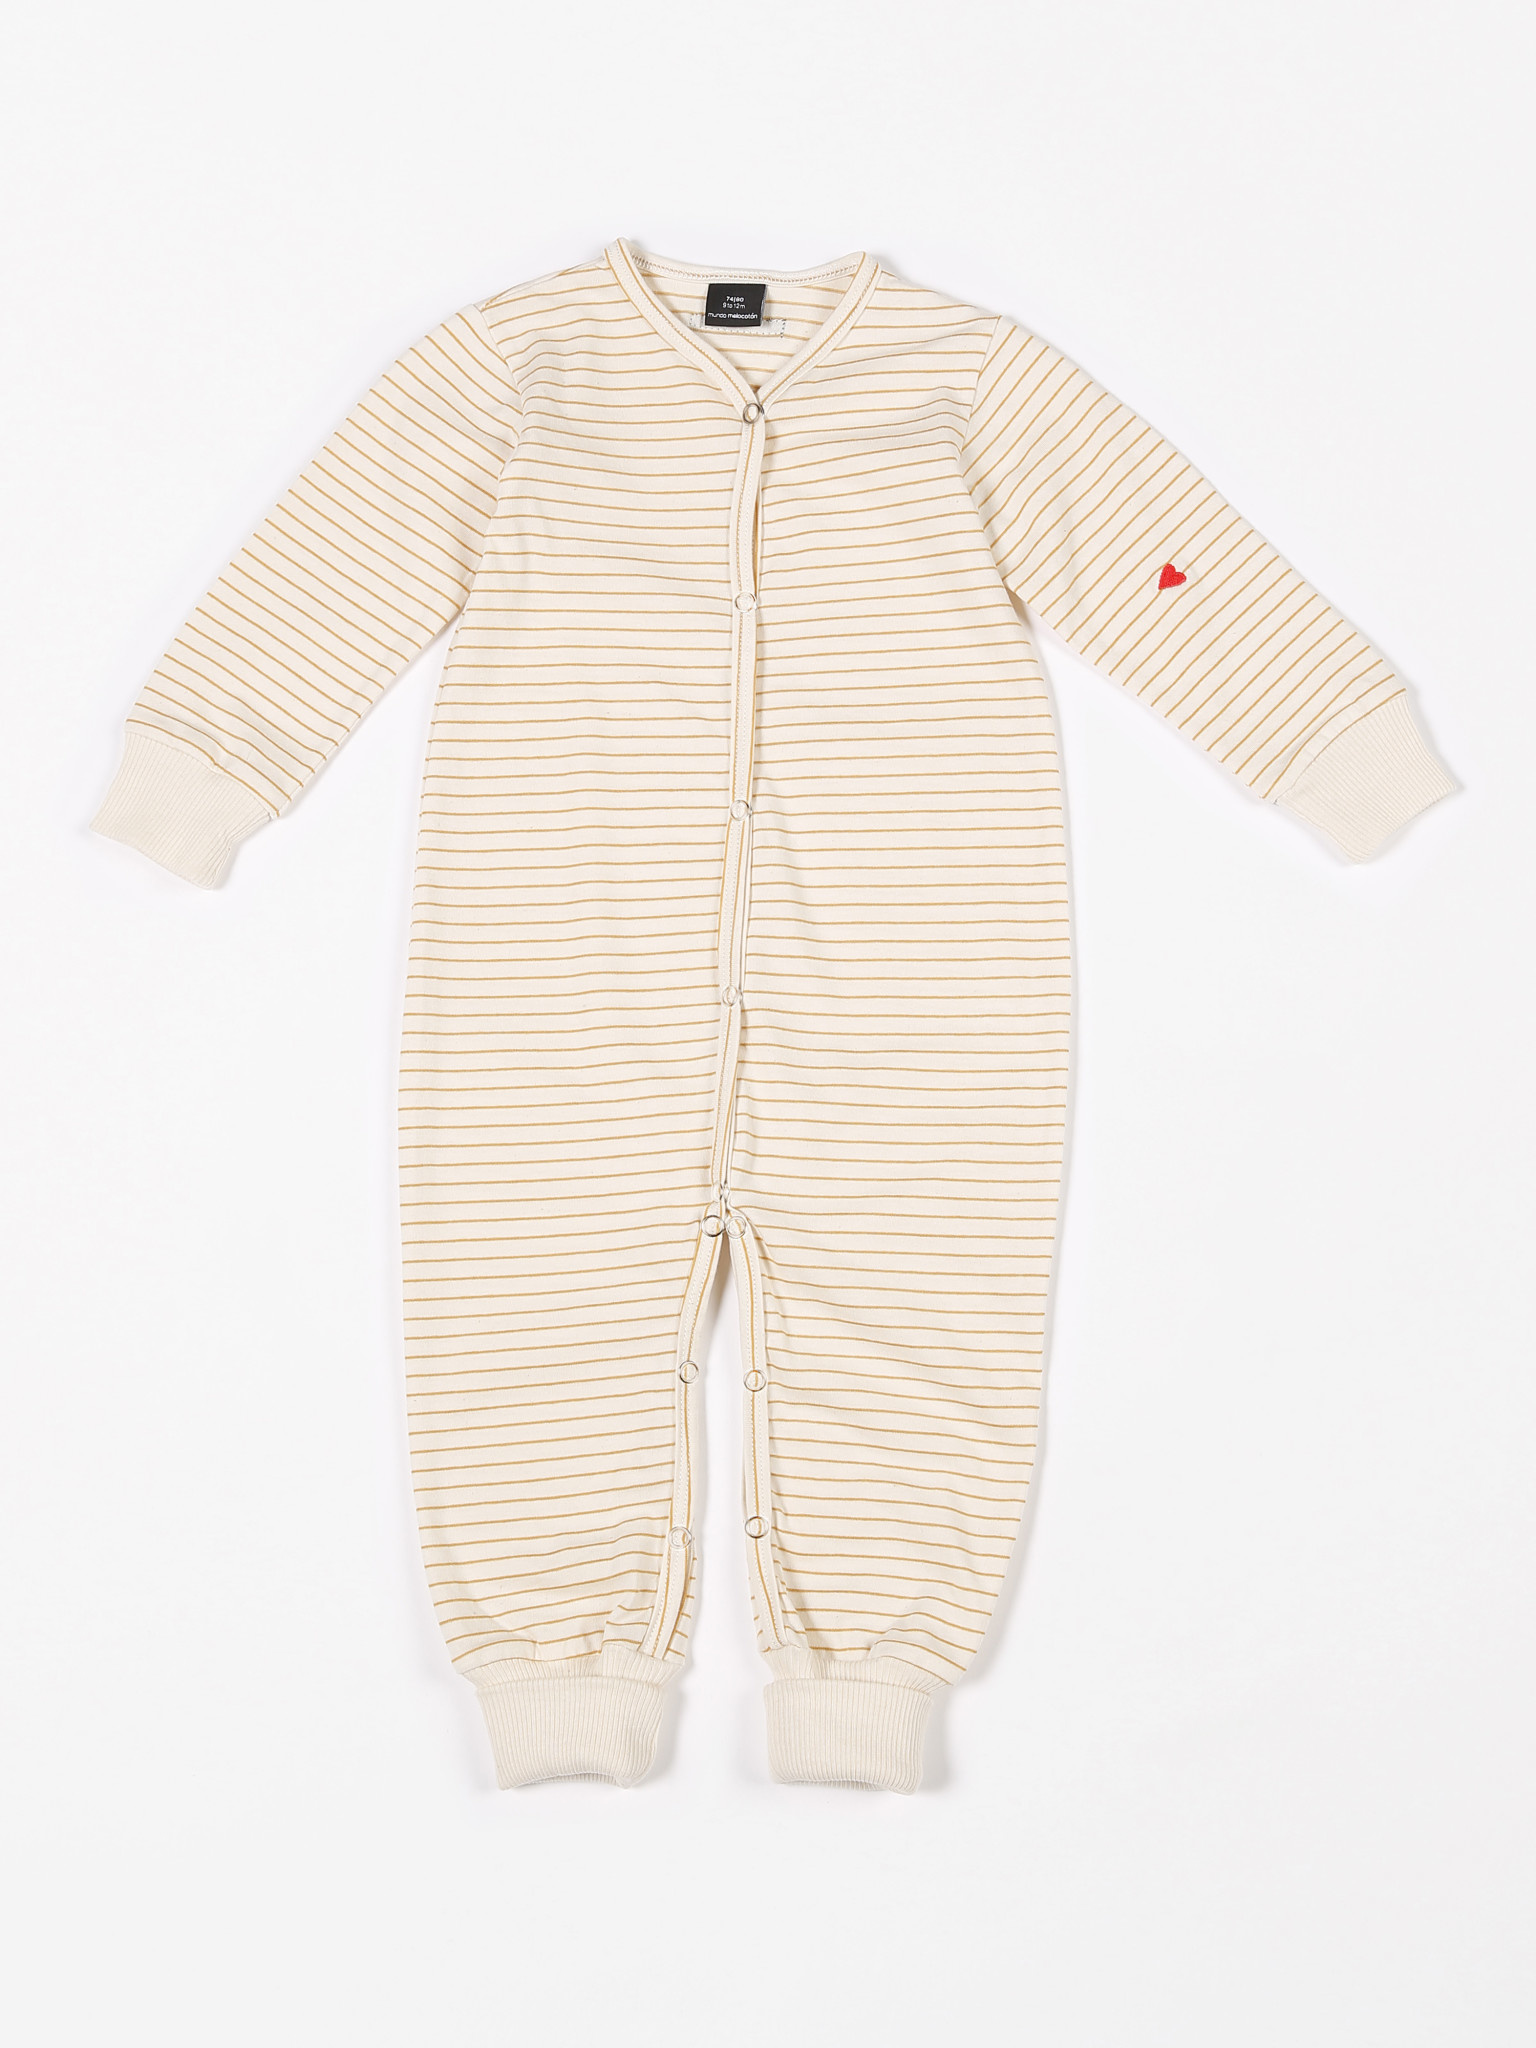 Playsuit jersey yellow stripes-1